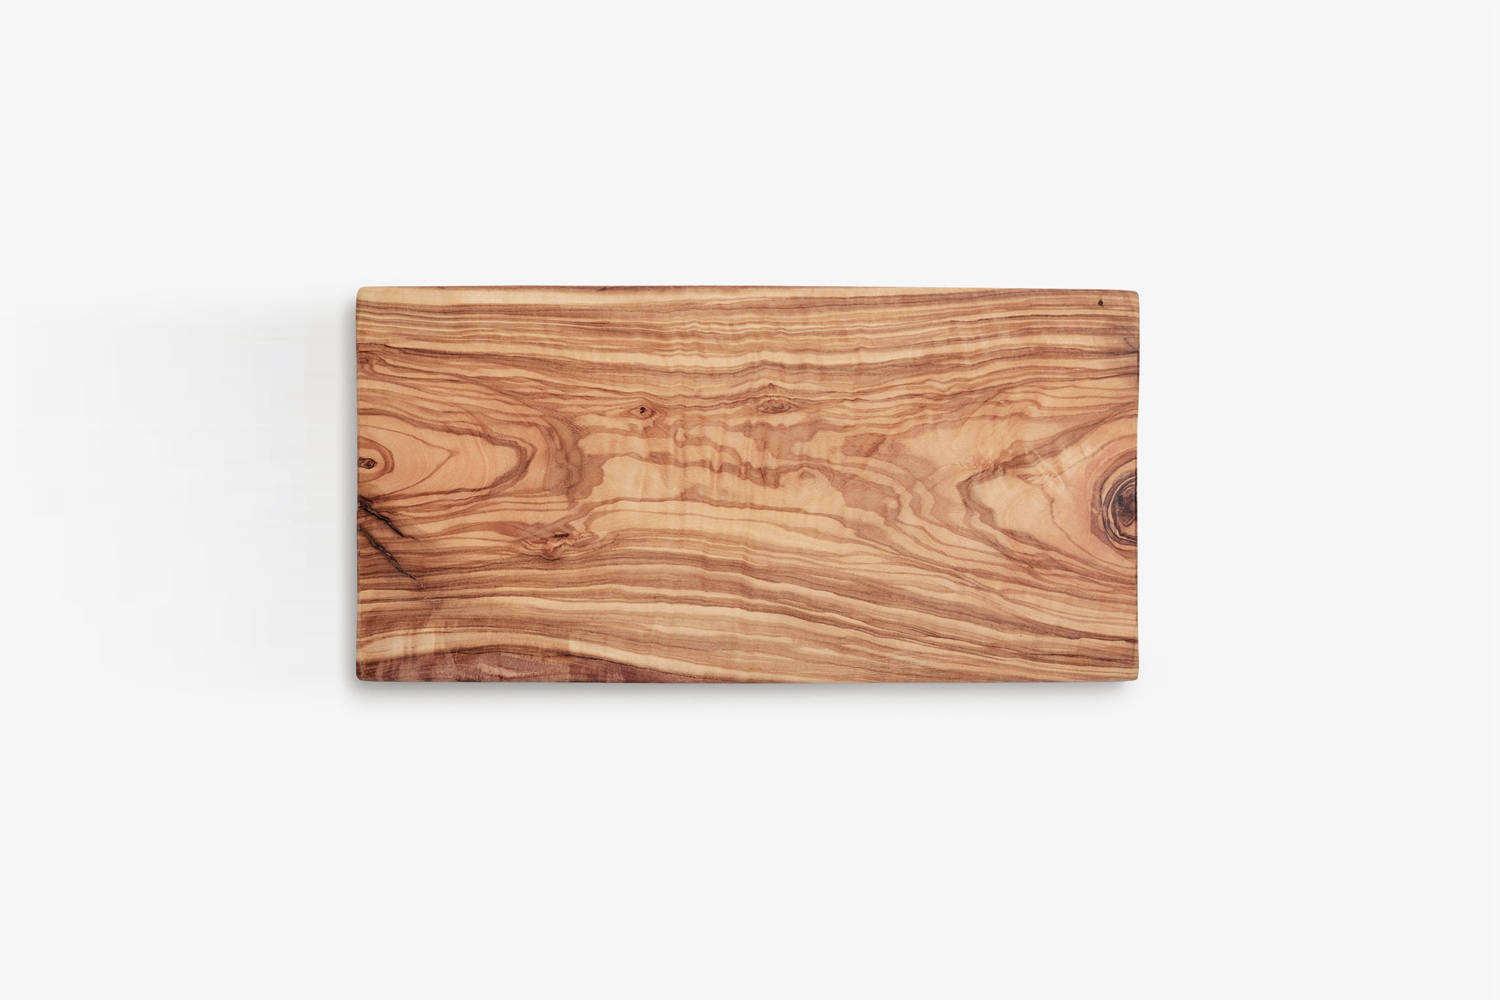 Steal This Look A Stylish Camp Kitchen in a Plywood Summer Cabin The Olivewood Rectangle Cutting Board is \$40 at ABC Carpet & Home.